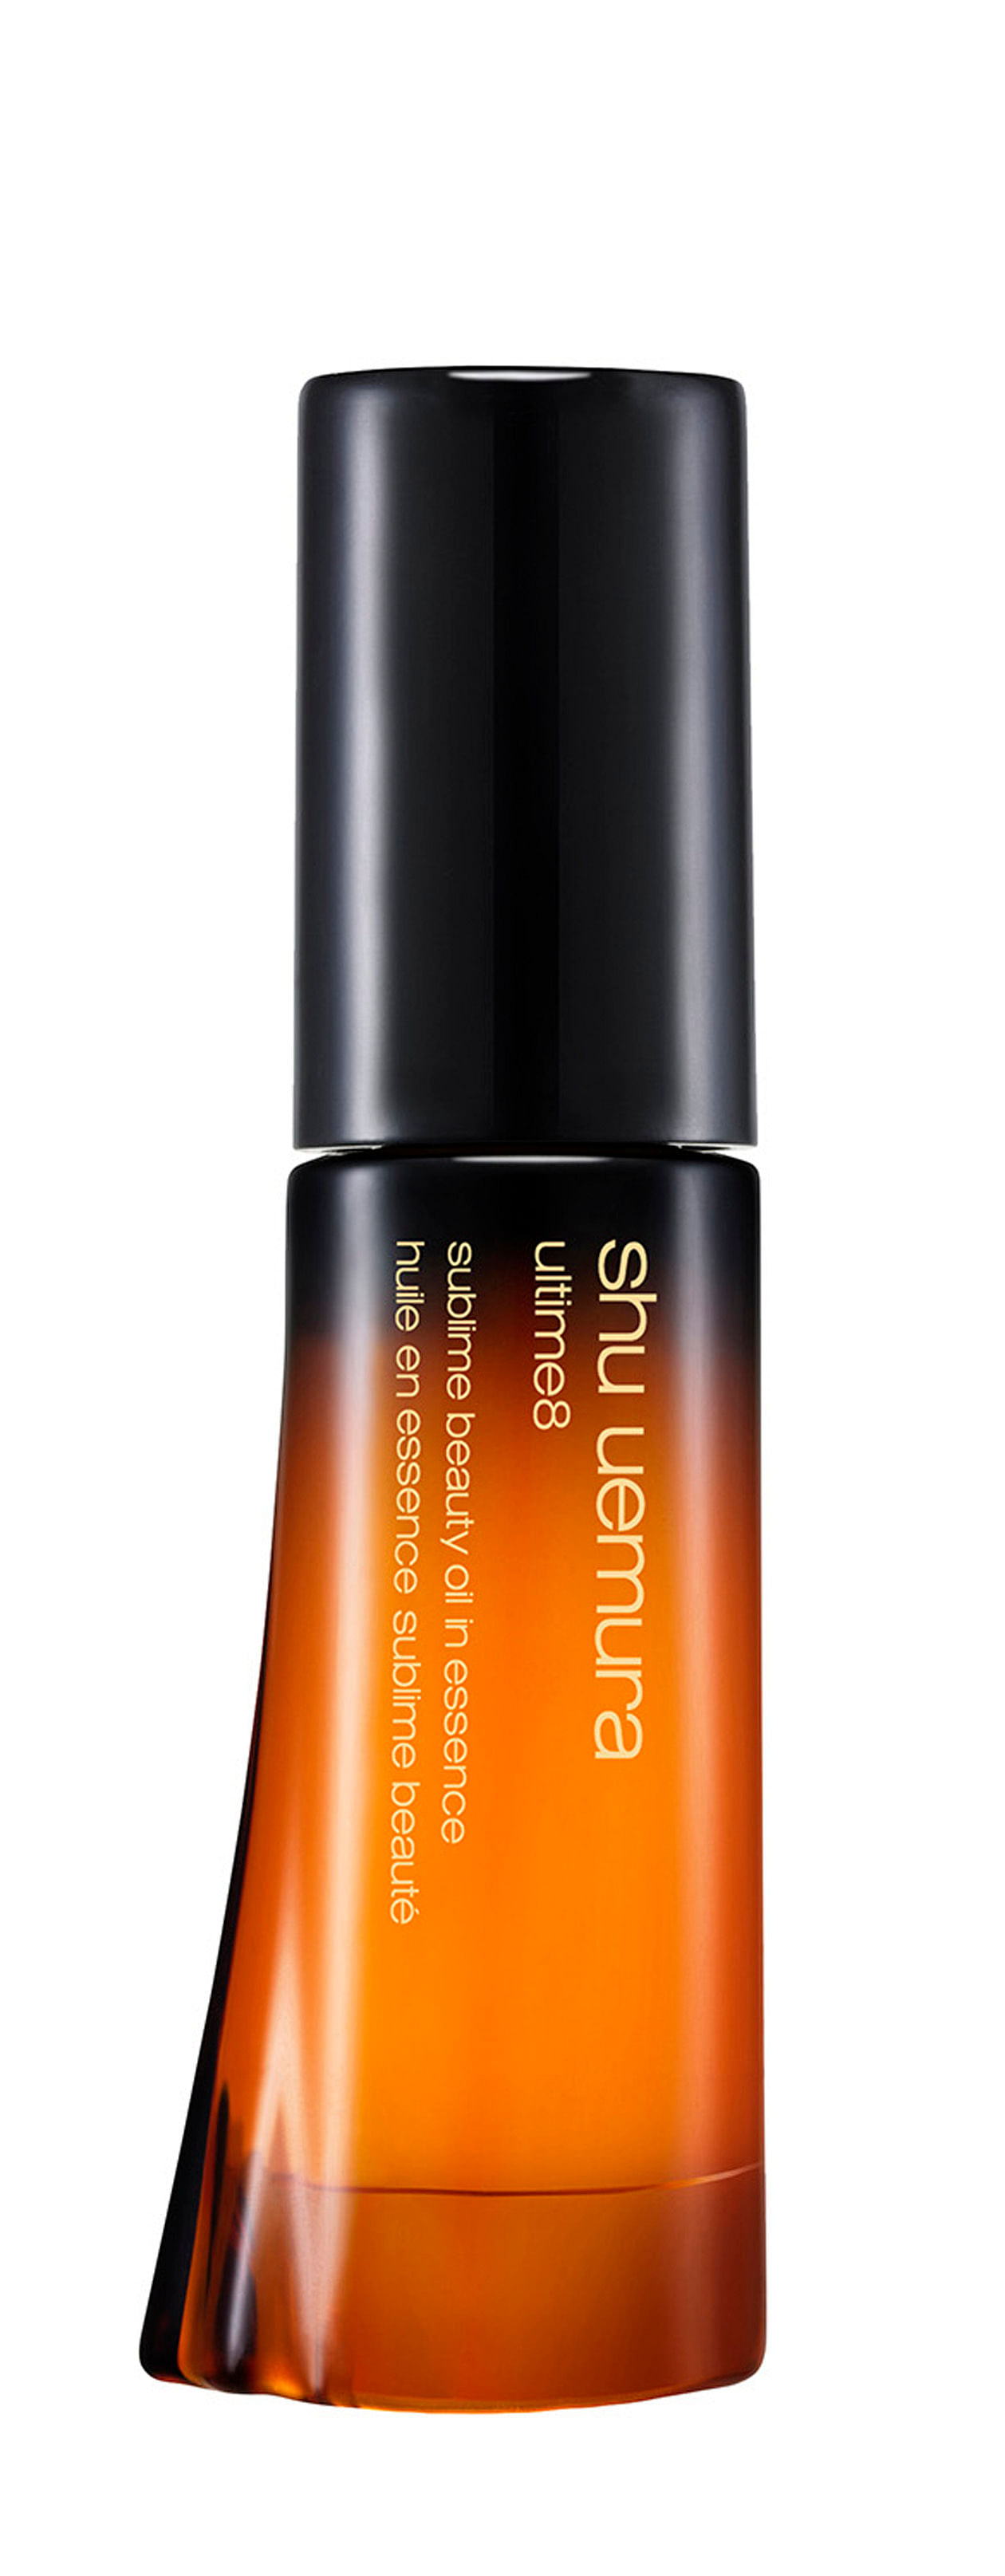 Image result for shu uemura ultime8 sublime beauty oil in essence